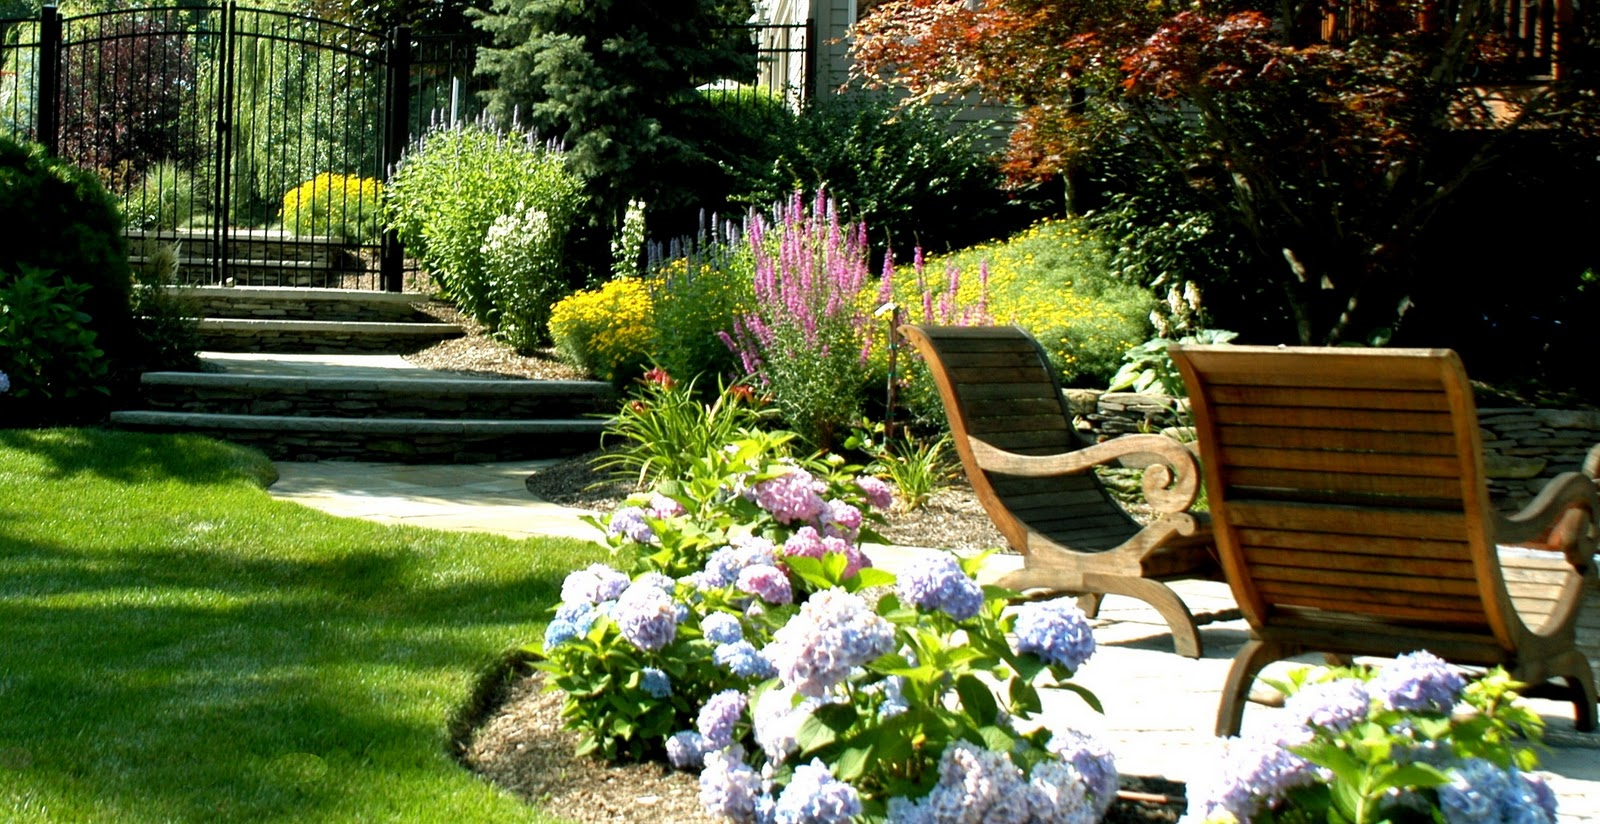 Hightechlandscapes new jersey landscape design for Landscape and design